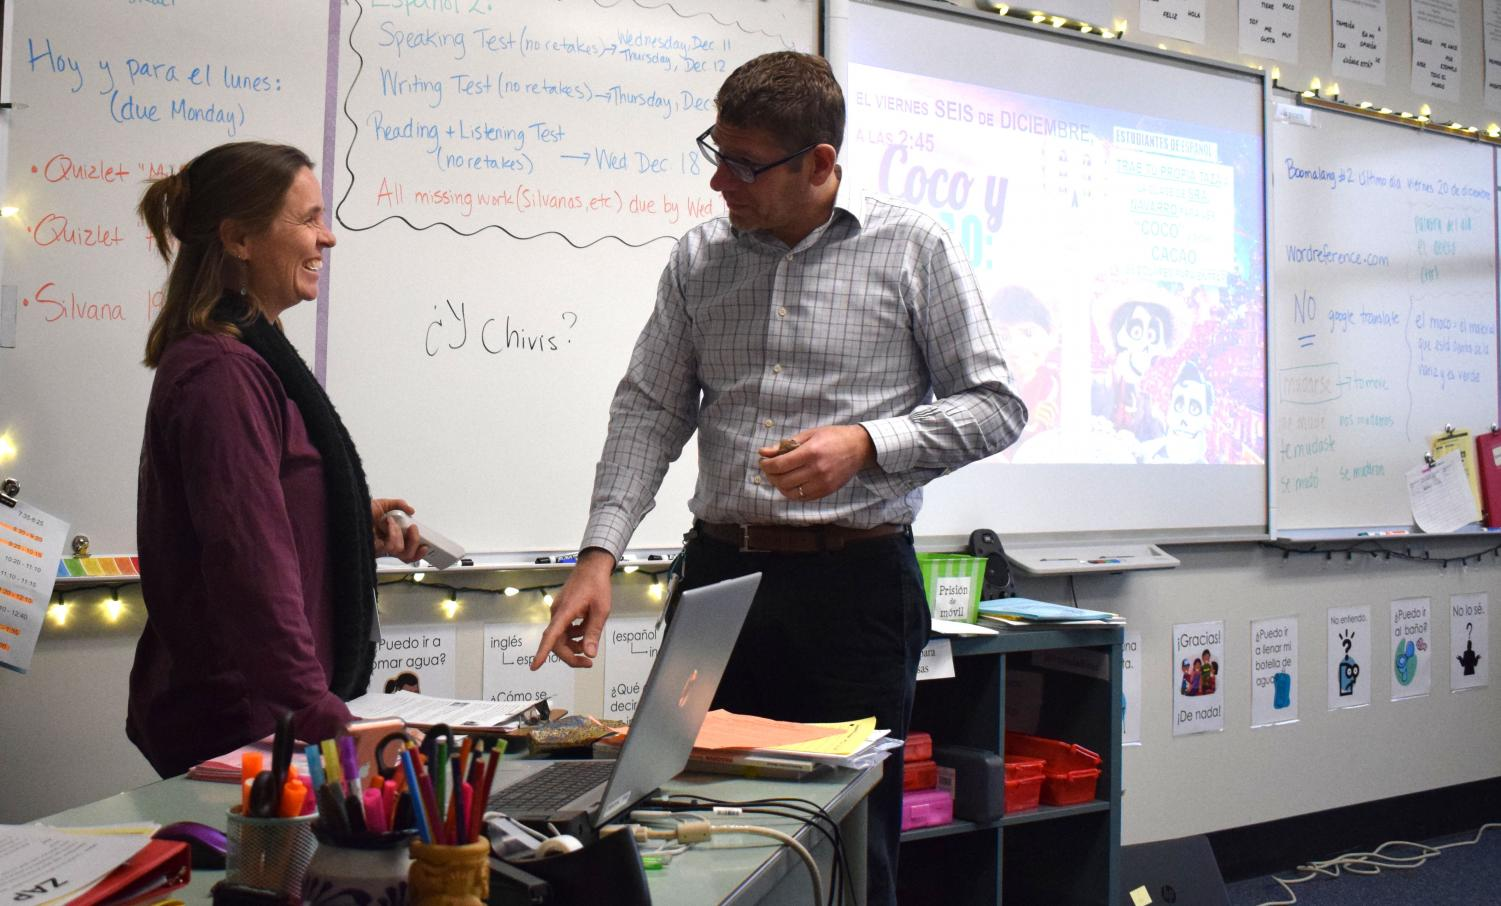 """During fourth hour planning period, Dominique and Francisco Navarro discuss lesson plans. The Navarro's enjoy sharing teaching strategies and having the opportunity to brainstorm what is best for students together. ''I love to inspire people and [make them] a little more open-minded to the world around us,"""" D. Navarro said."""